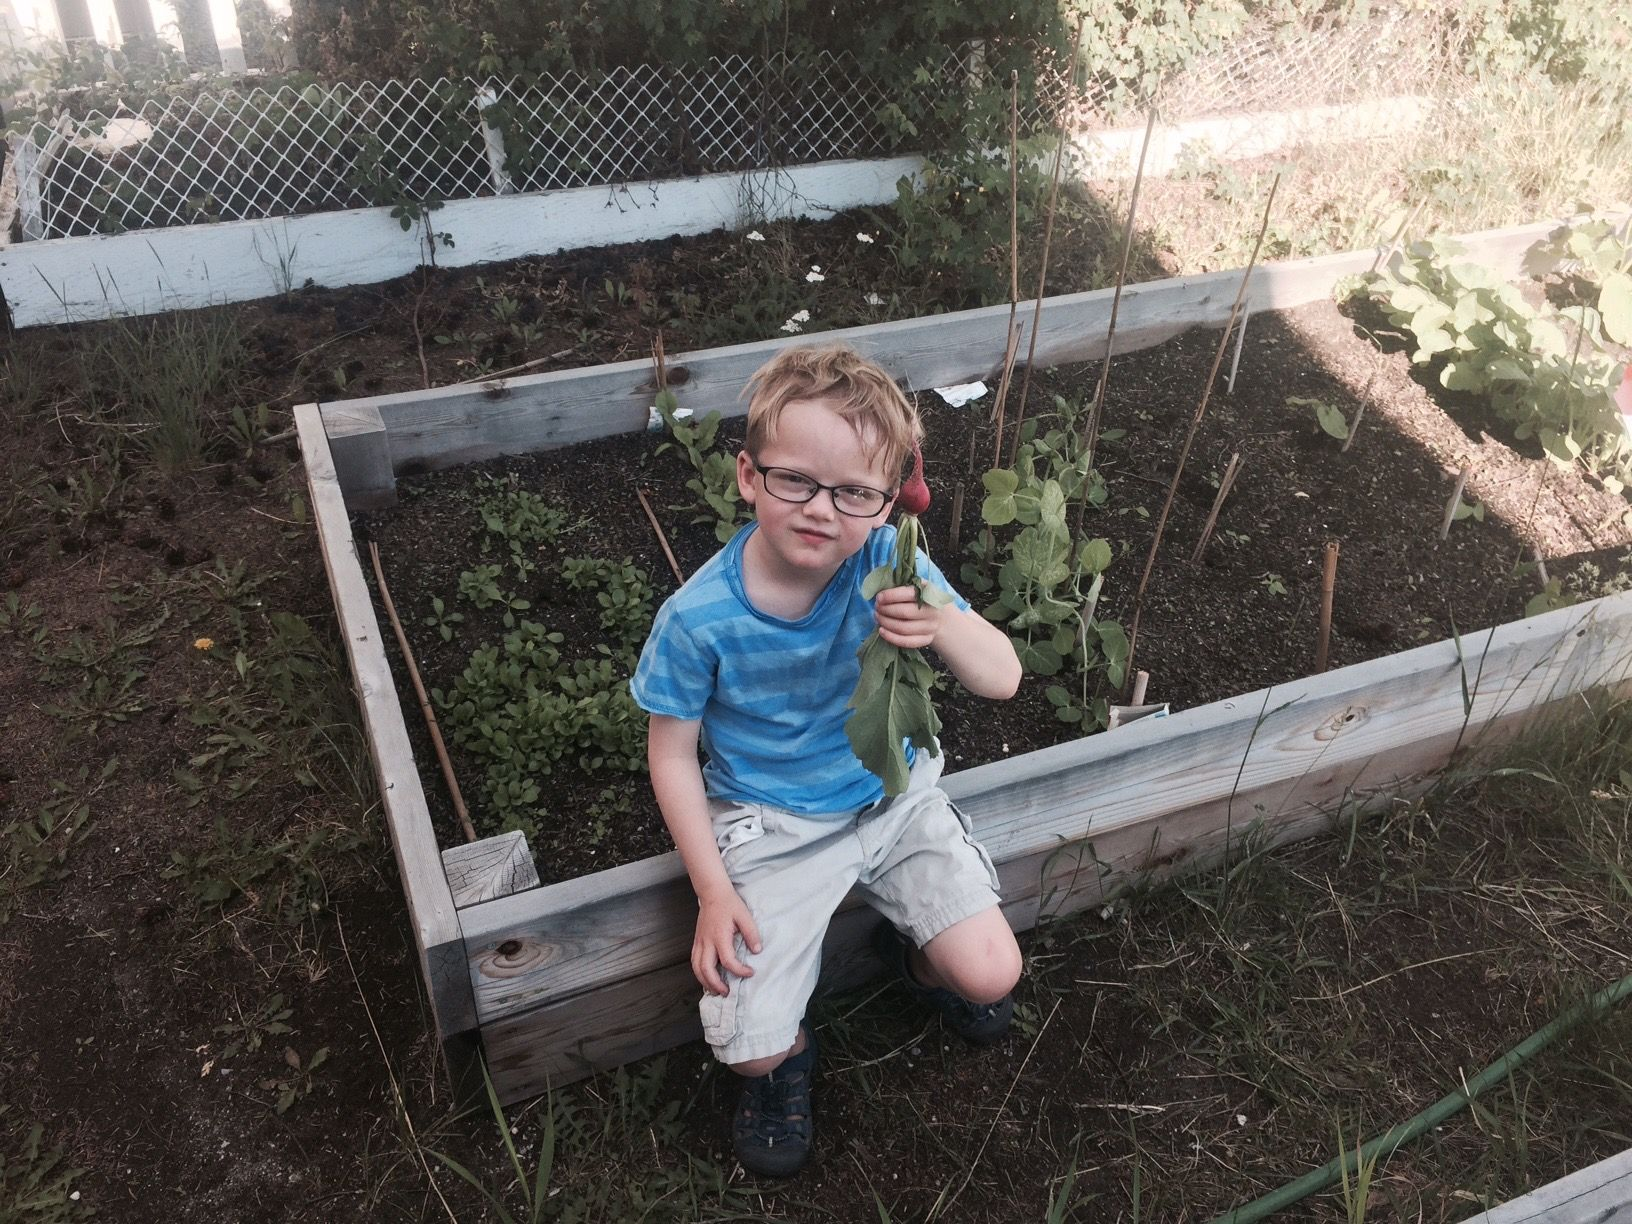 A garden bed all of his own.